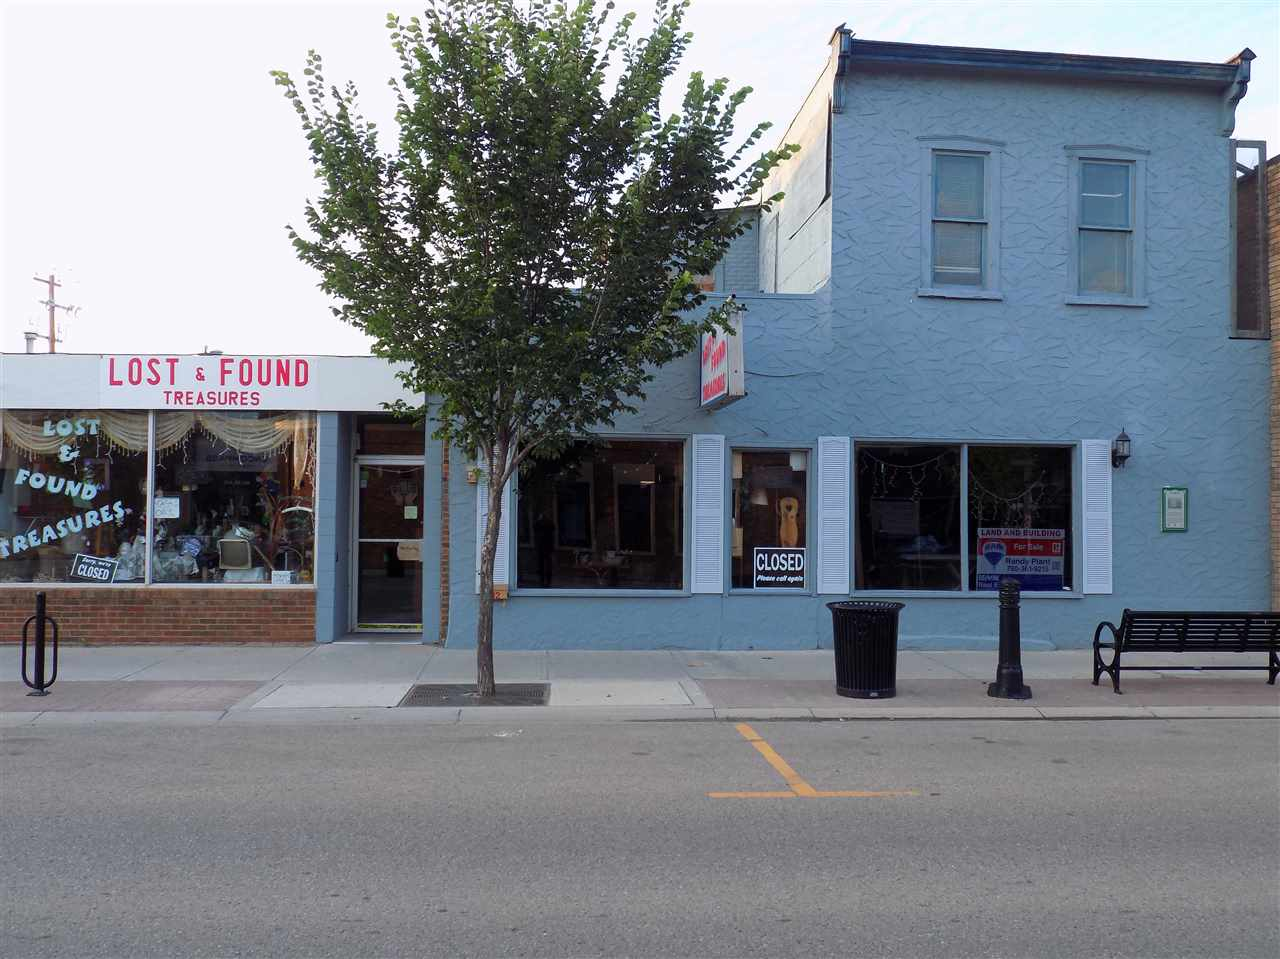 Retail Property for Sale, MLS® # E4237075